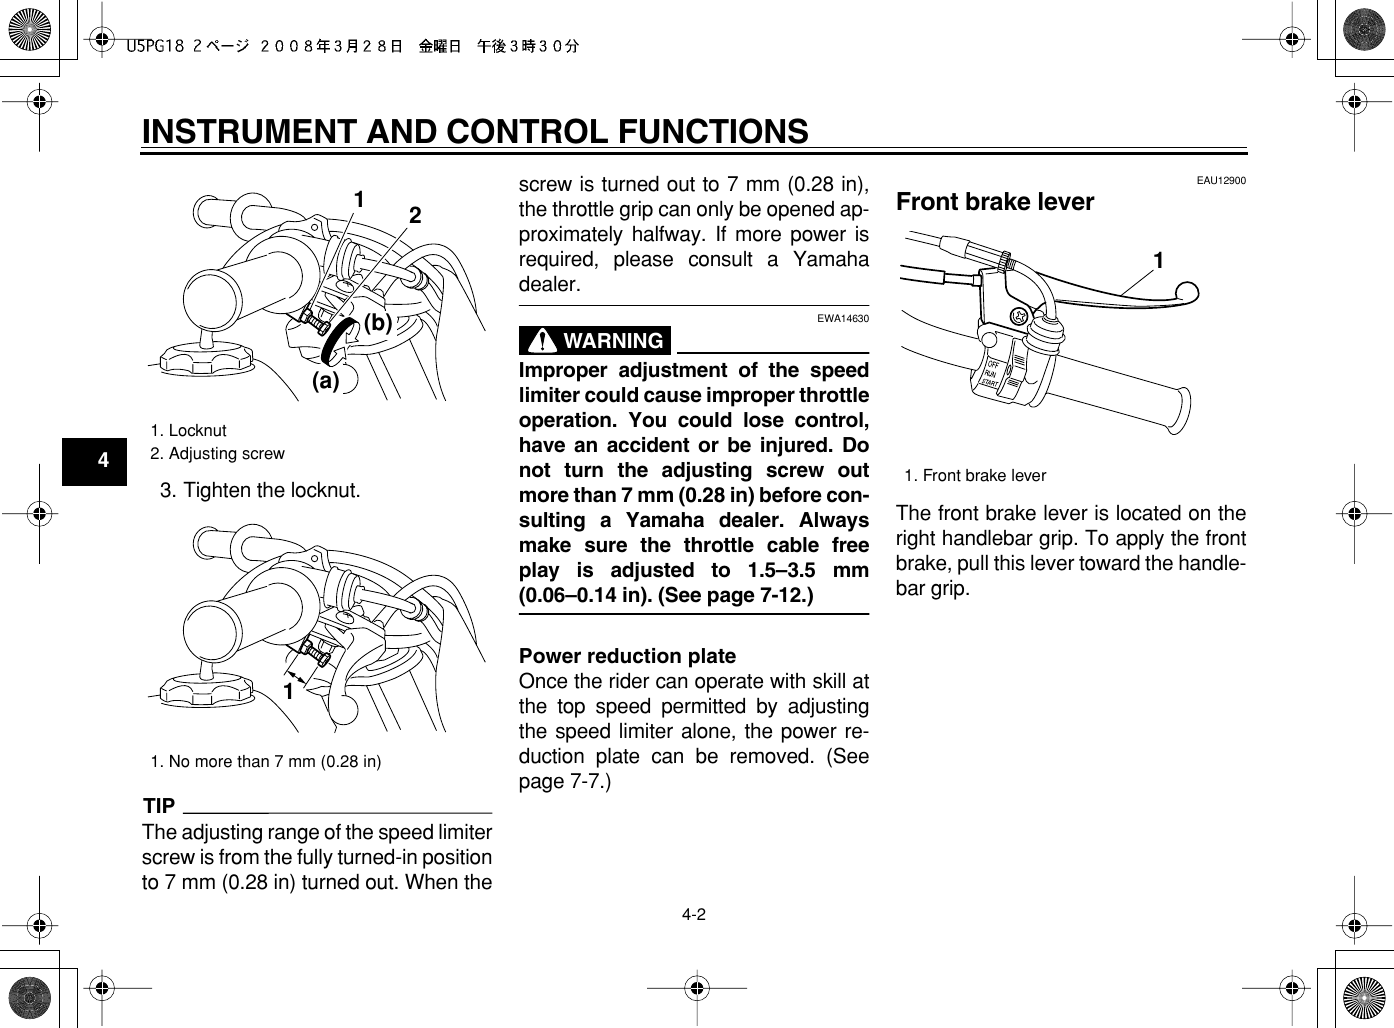 Yamaha Pw50Y Users Manual PW50 Owners